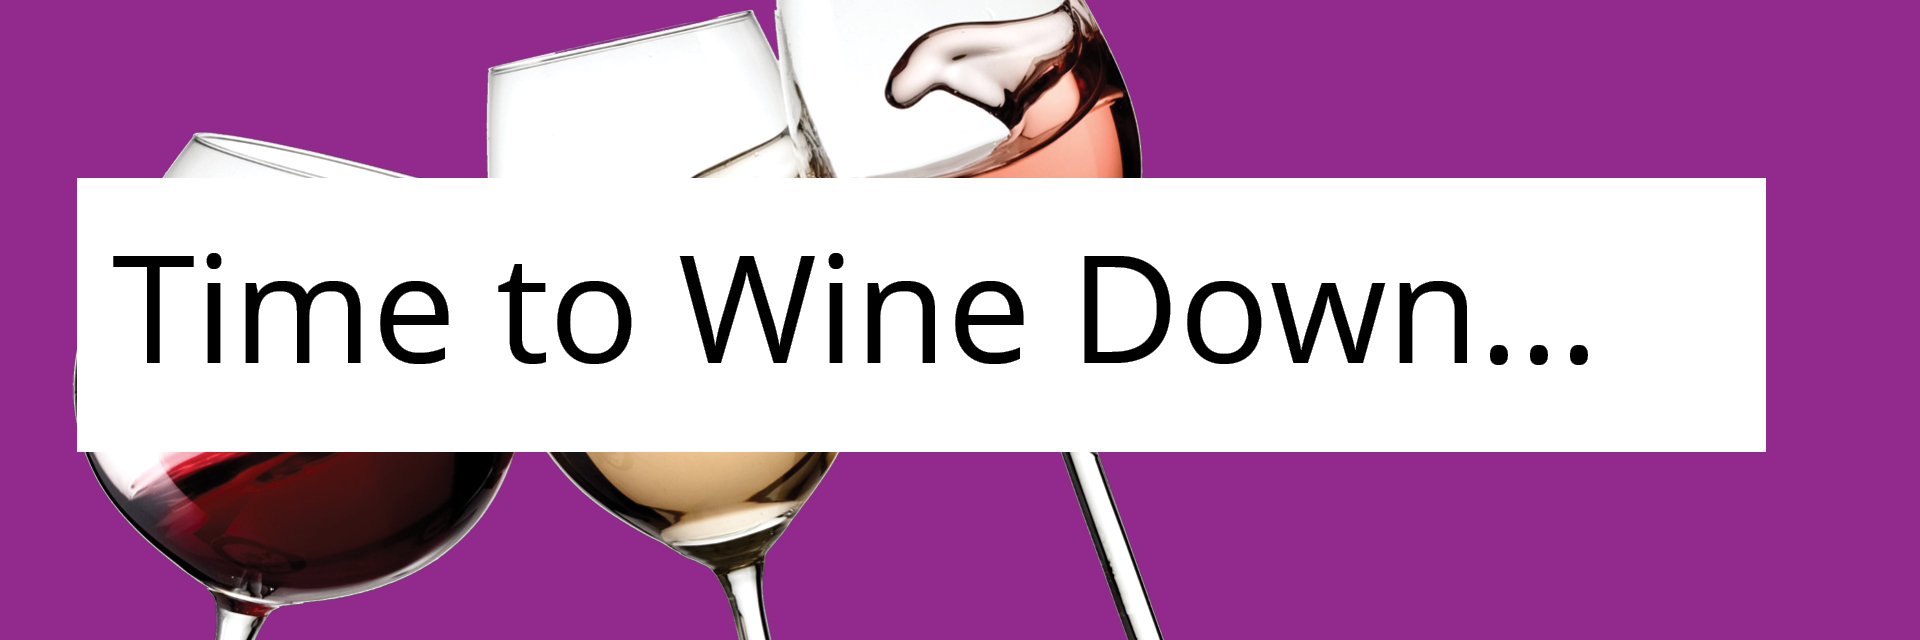 """<a href=""""https://www.congkti.org/event/wine-lovera-tasting.html#""""                                     target="""""""">                                                                 <span class=""""slider_title"""">                                     Virtual Wine Tasting                                </span>                                                                 </a>                                                                                                                                                                                       <span class=""""slider_description"""">Thursday, October 29th at 7:30 pm</span>                                                                                     <a href=""""https://www.congkti.org/event/wine-lovera-tasting.html#"""" class=""""slider_link""""                             target="""""""">                             Information & registration here...                            </a>"""